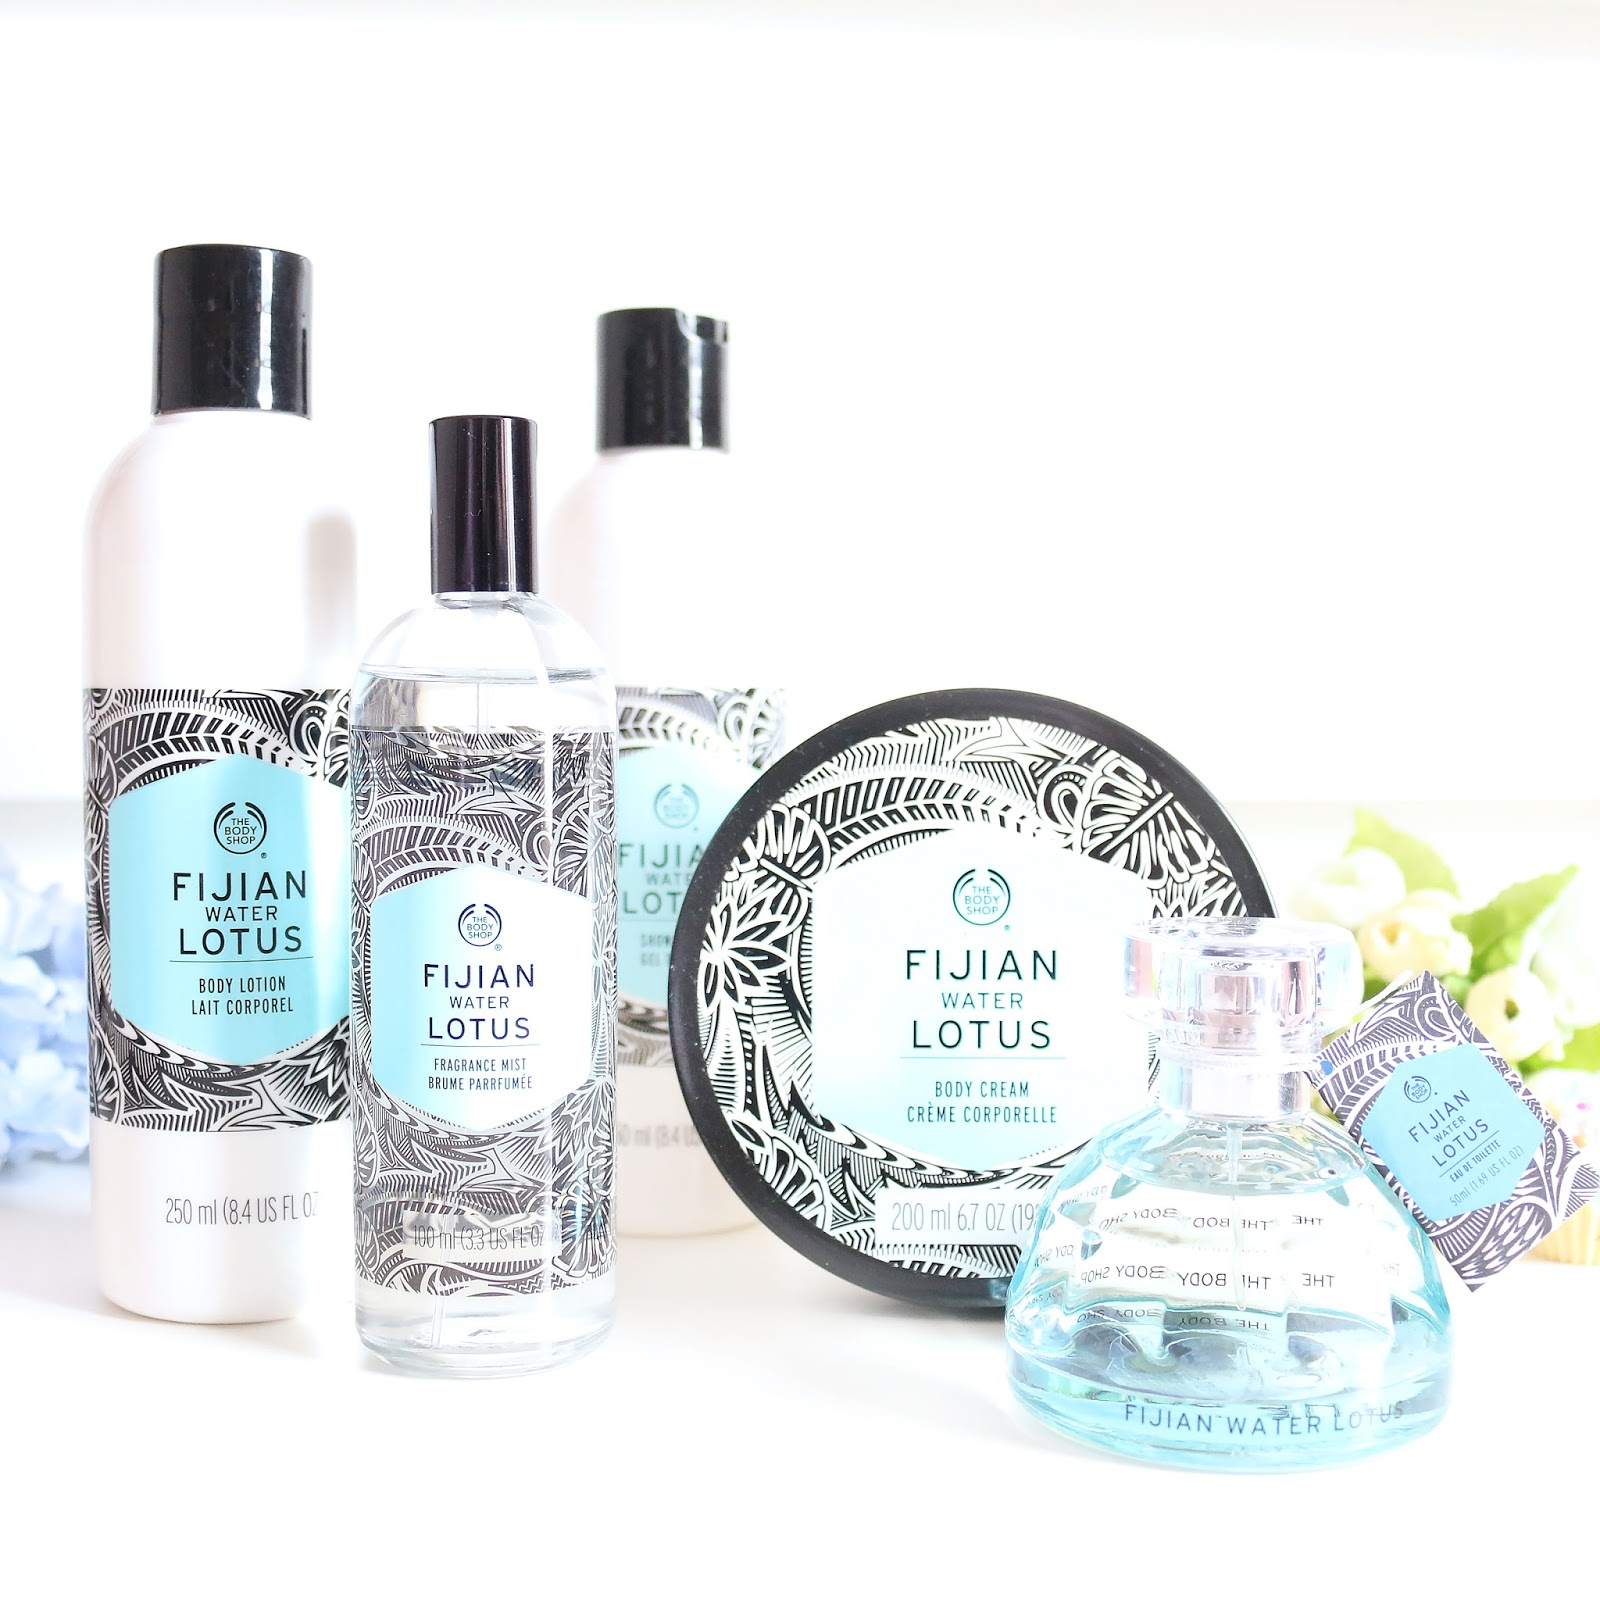 the body shop, body shop, review, beauty, skincare, fijian water lotus, the body shop voyage collection, voyage collection,